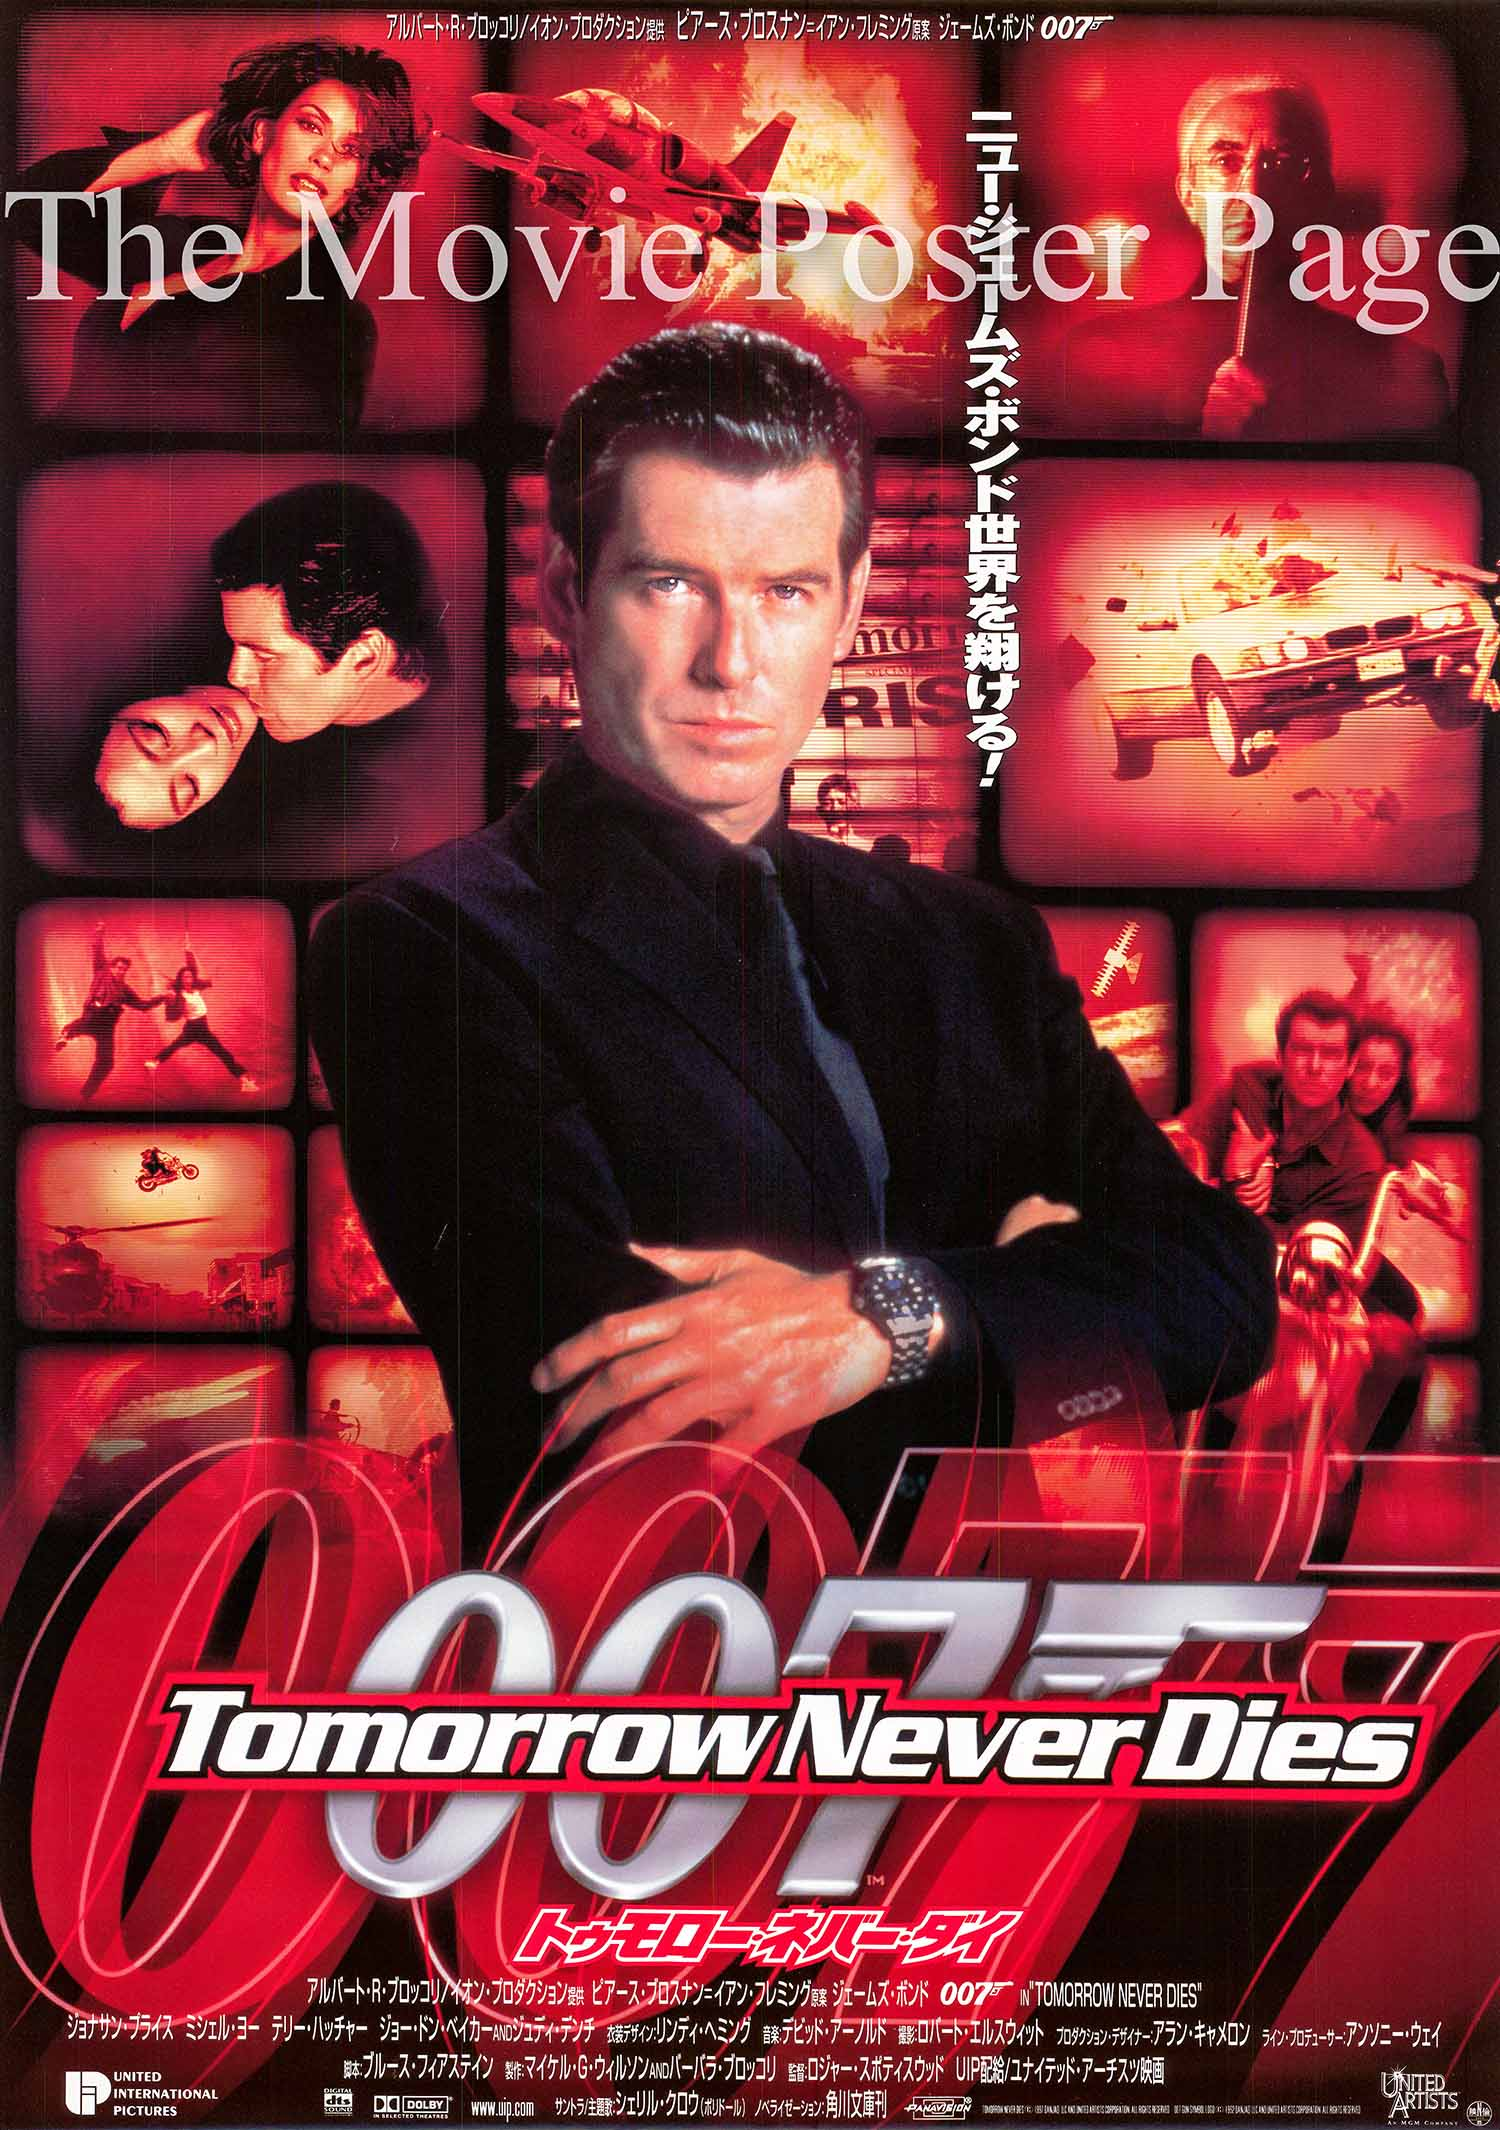 Pictured is a Japanese B2 promotional poster for the 1997 Roger Spottiswoode film Tomorrow Never Dies starring Pierce Brosnan as James Bond.